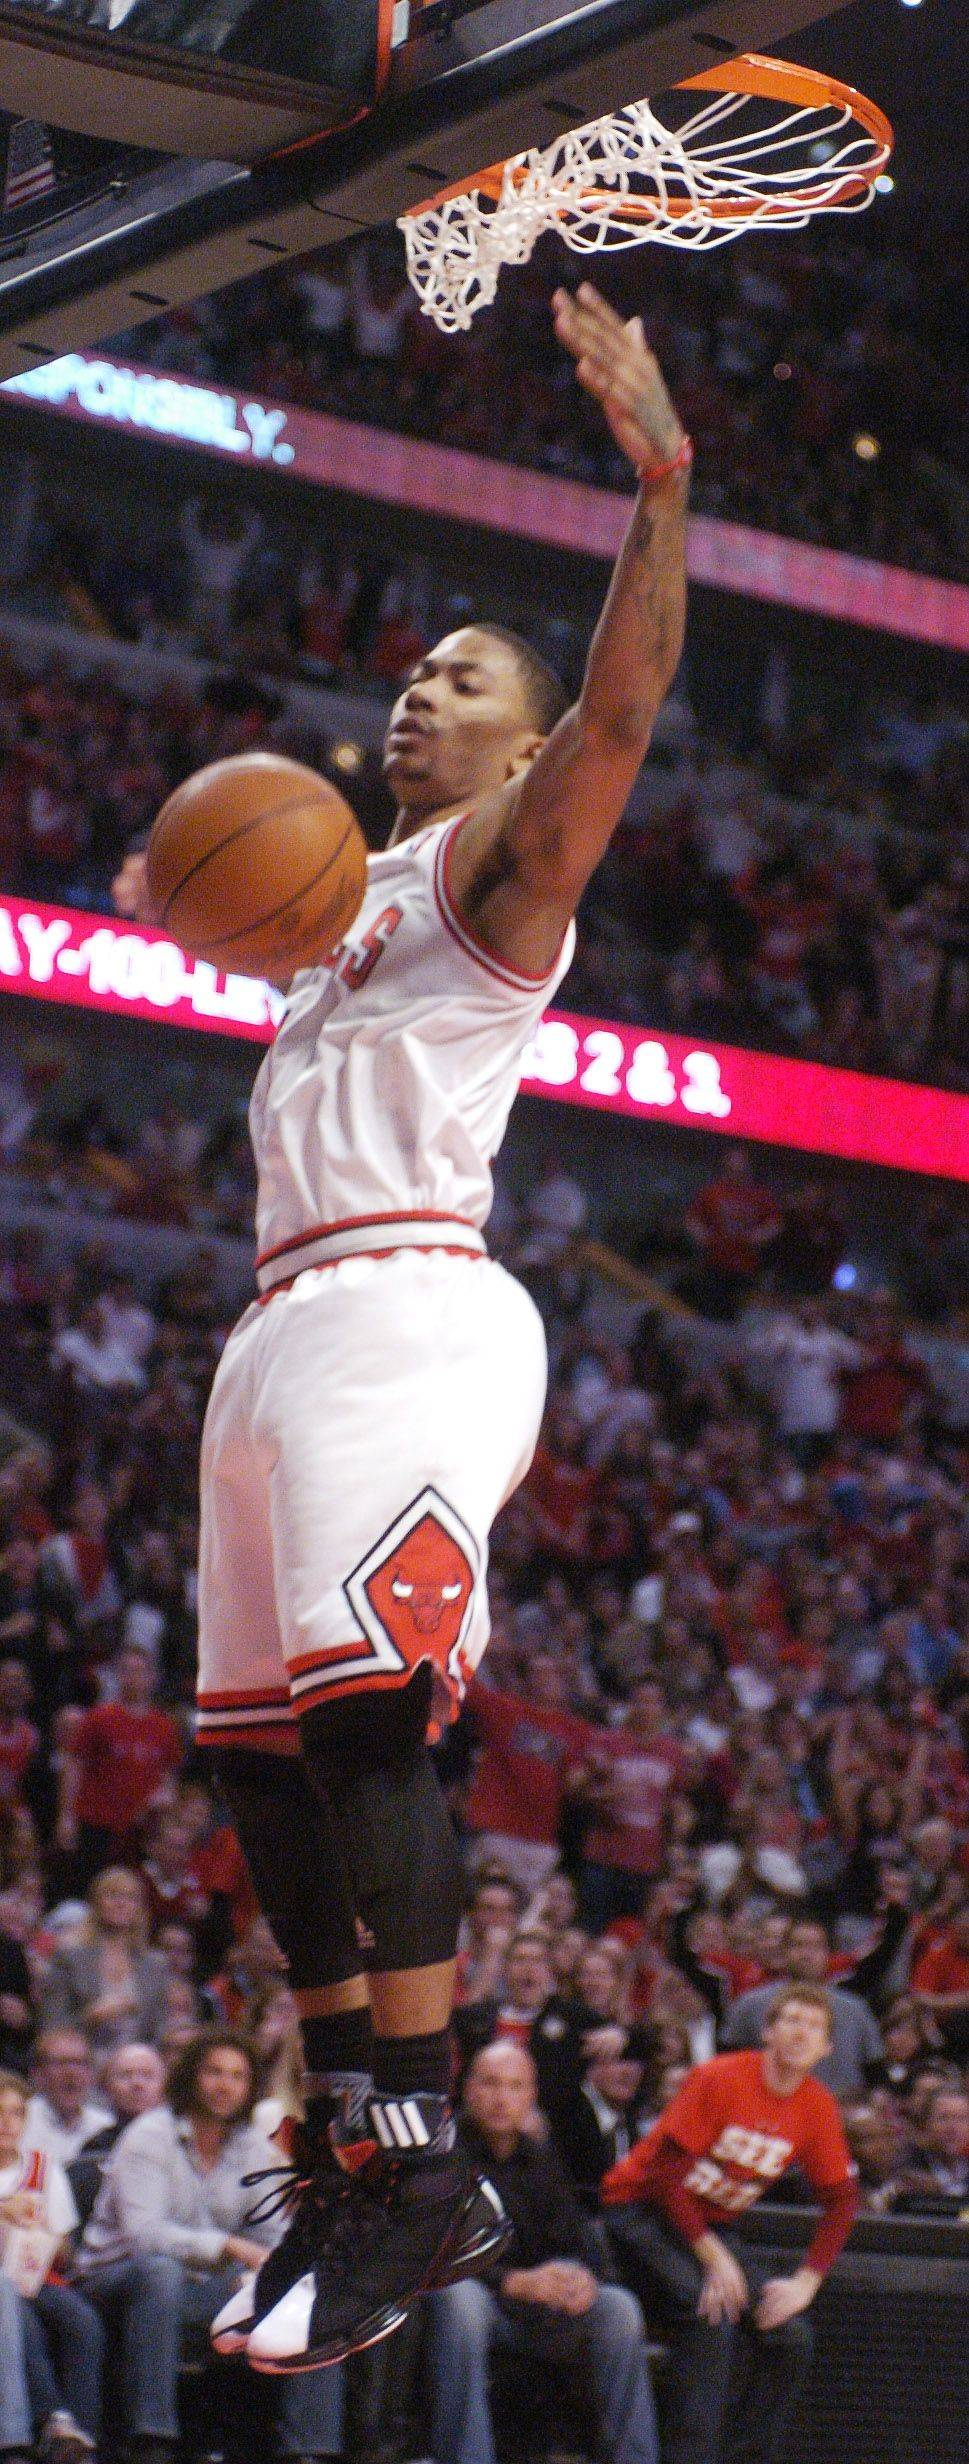 Derrick Rose dunks after a steal during Monday's game against the Atlanta Hawks.